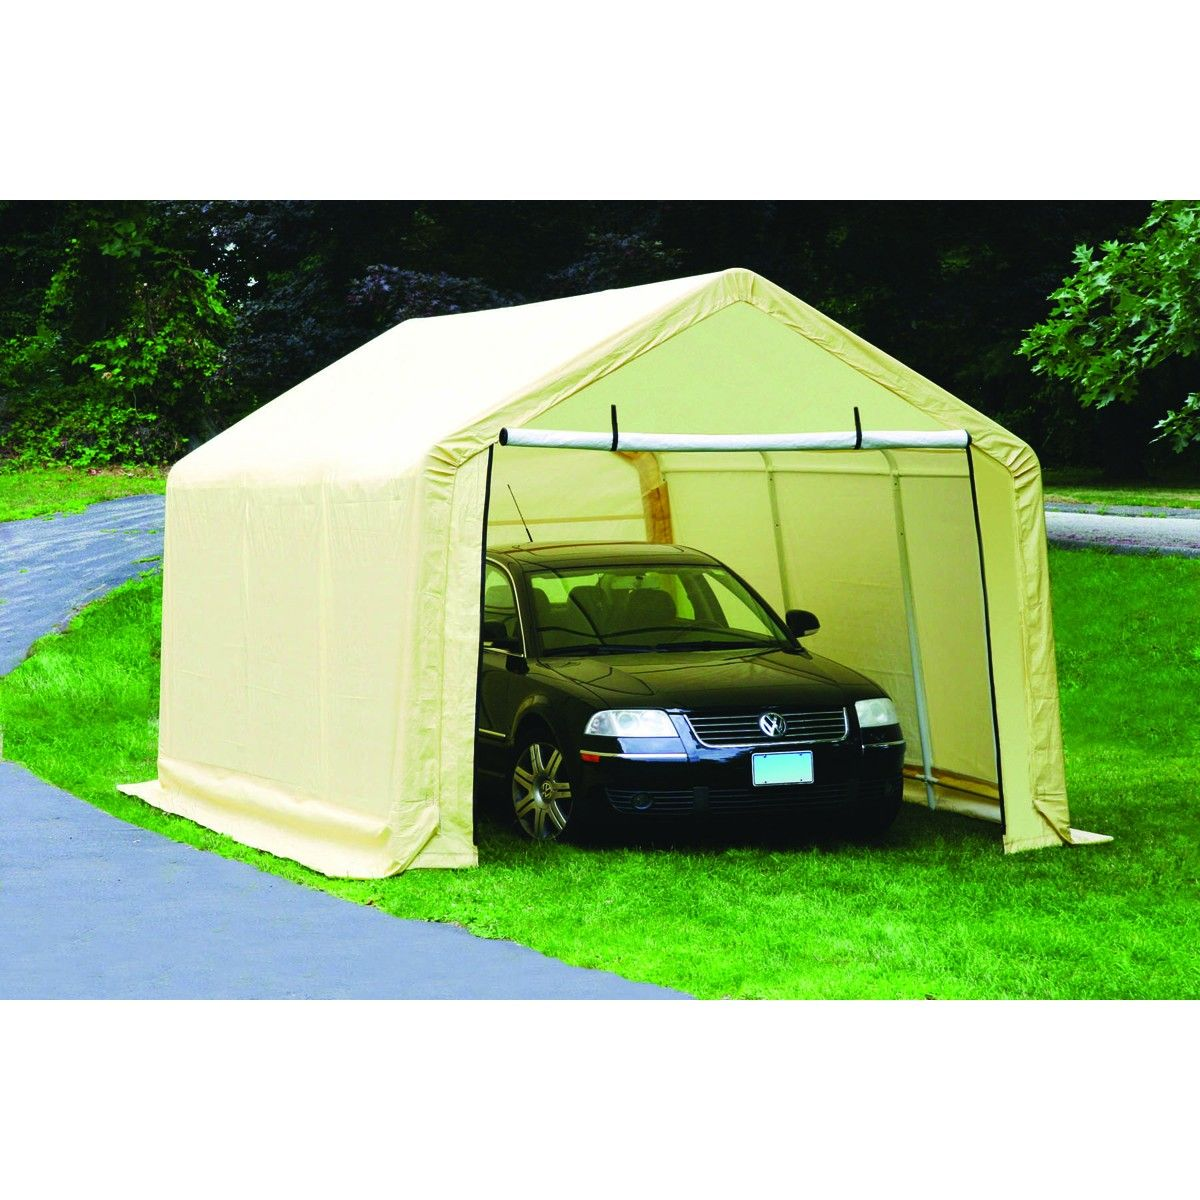 10 ft. x 17 ft. Portable Garage (At Harbor Freight could